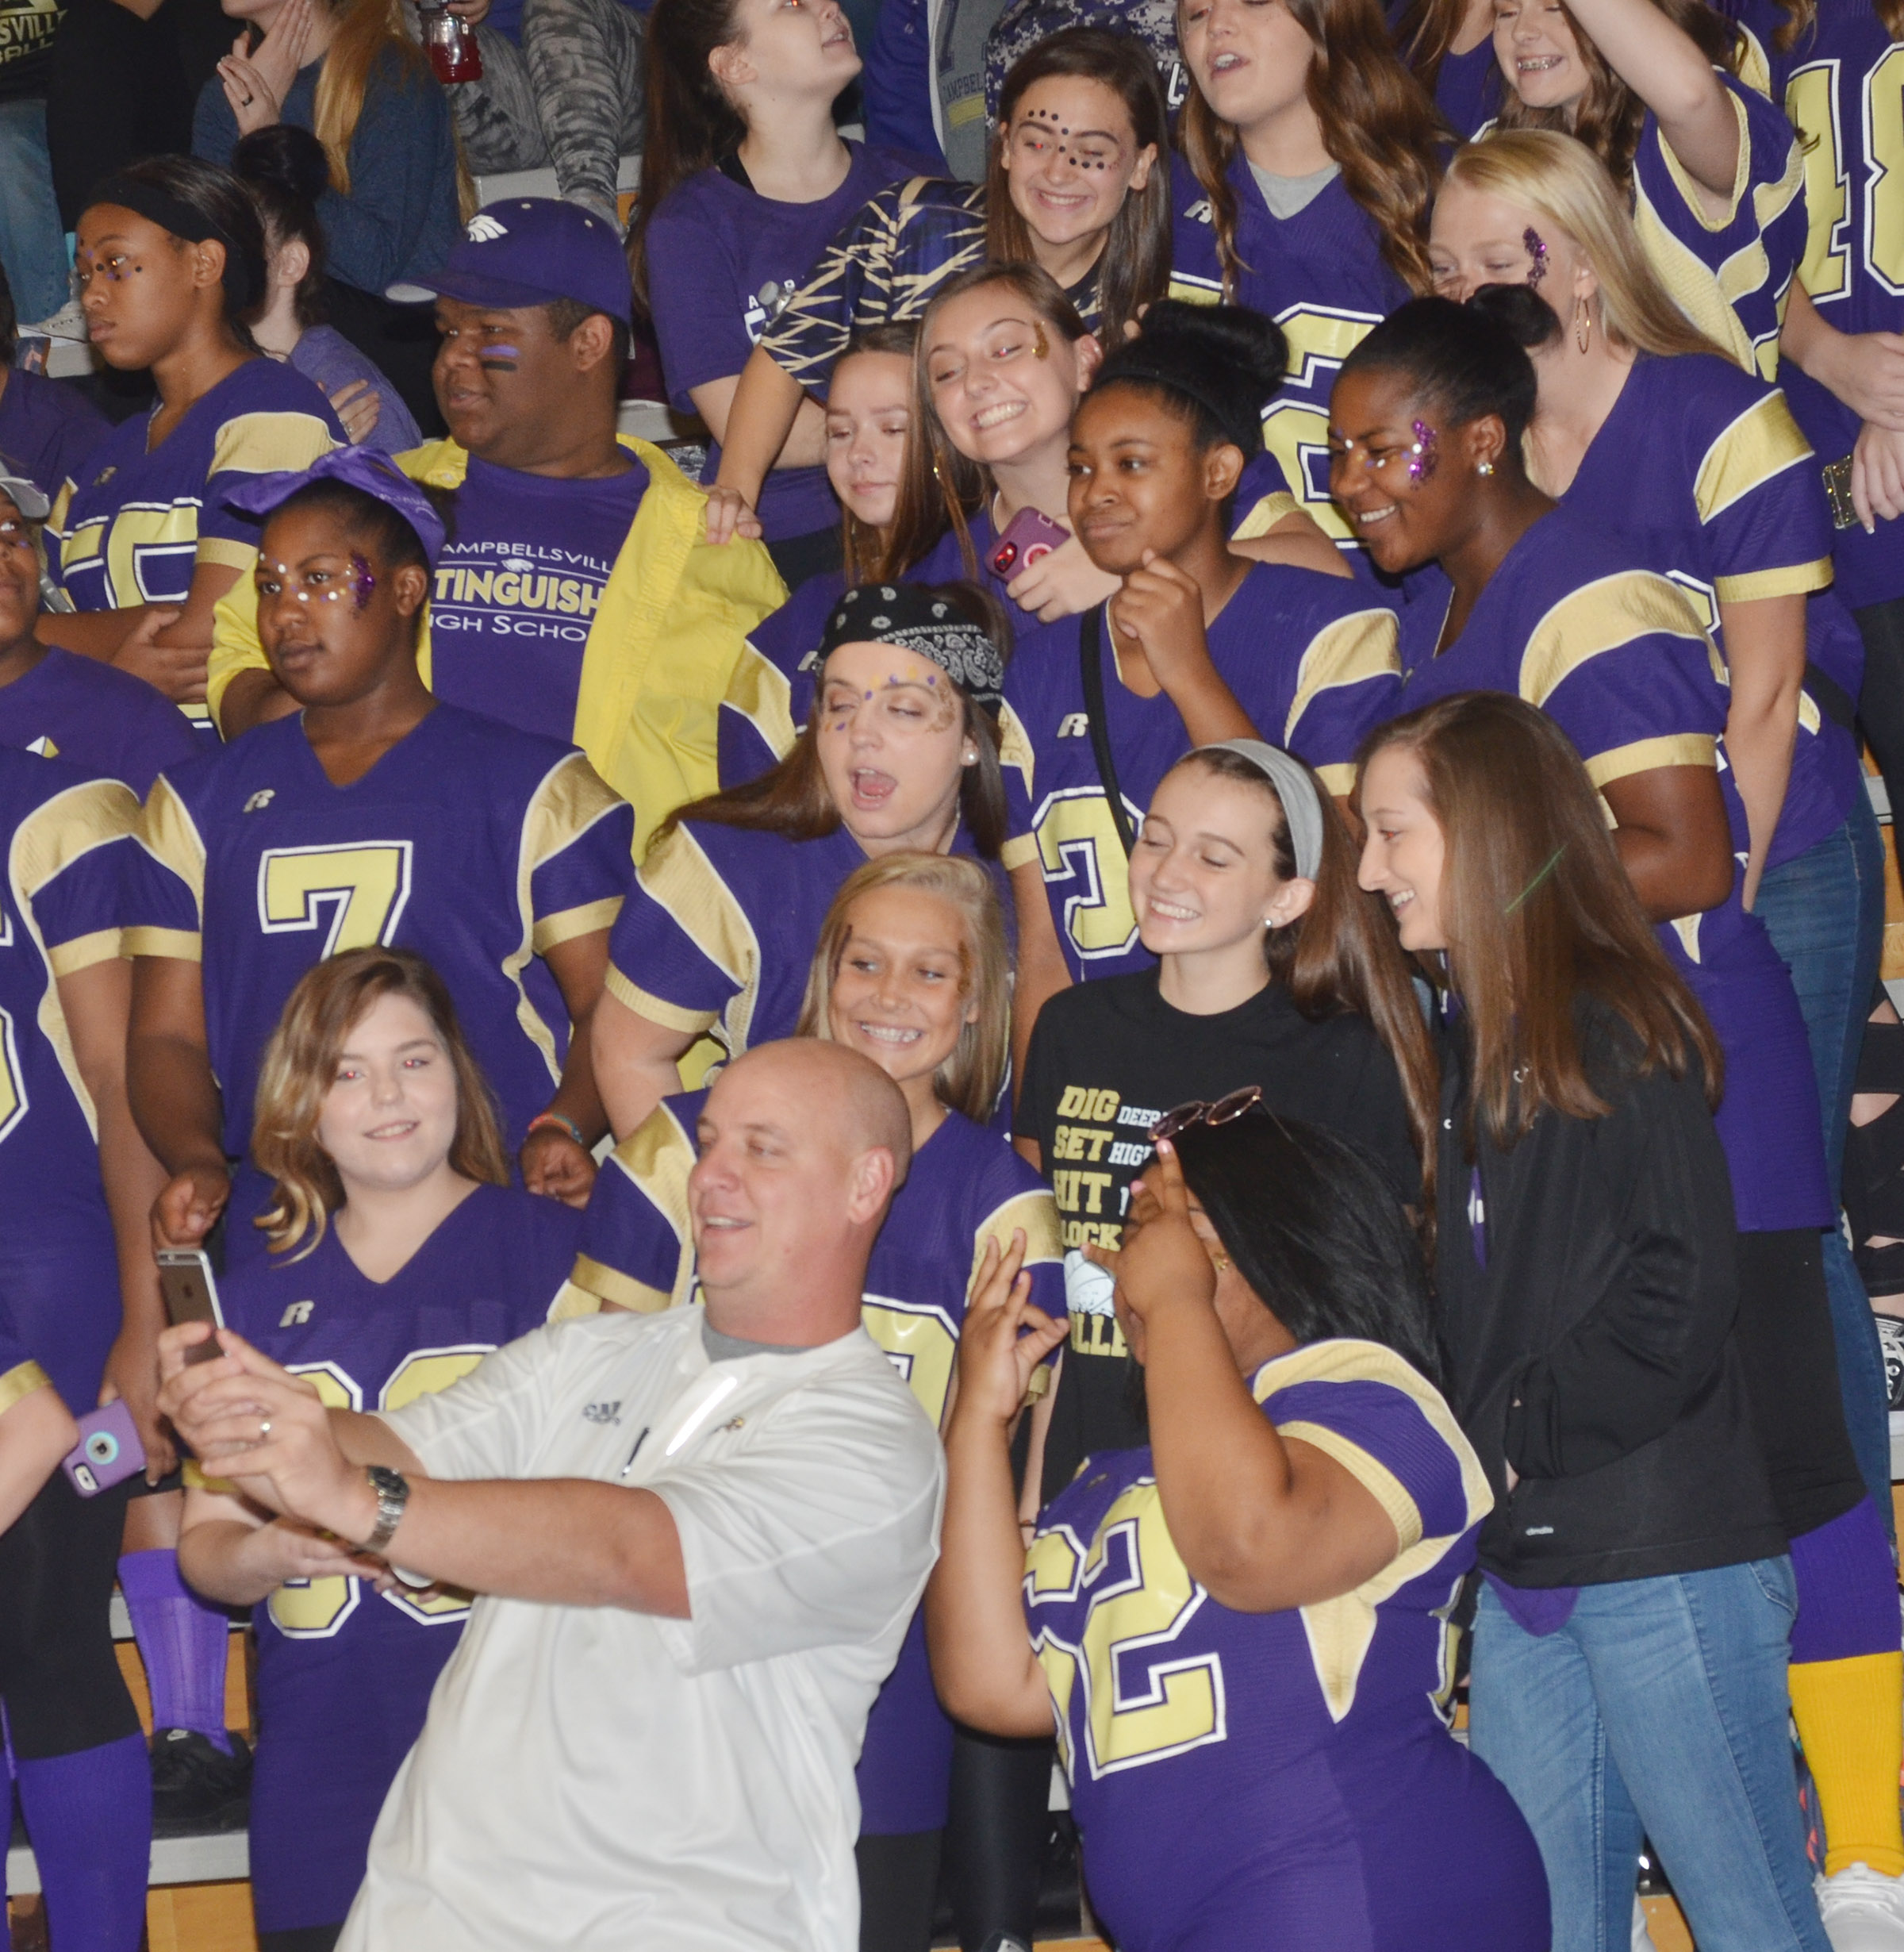 CHS Principal David Petett takes a selfie with his students.